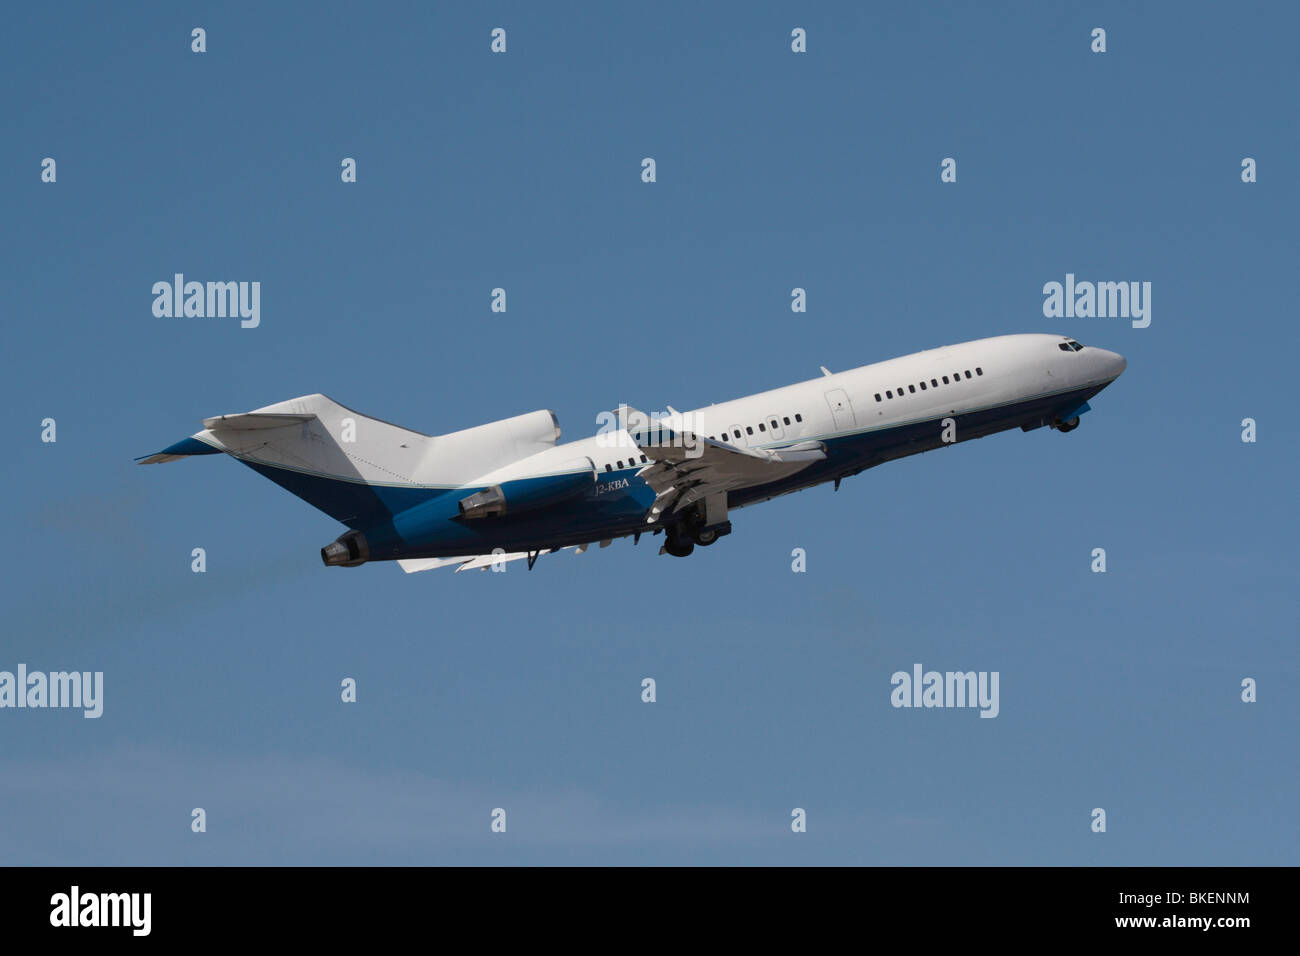 Boeing 727-100 VIP plane belonging to the Government of Djibouti on departure - Stock Image